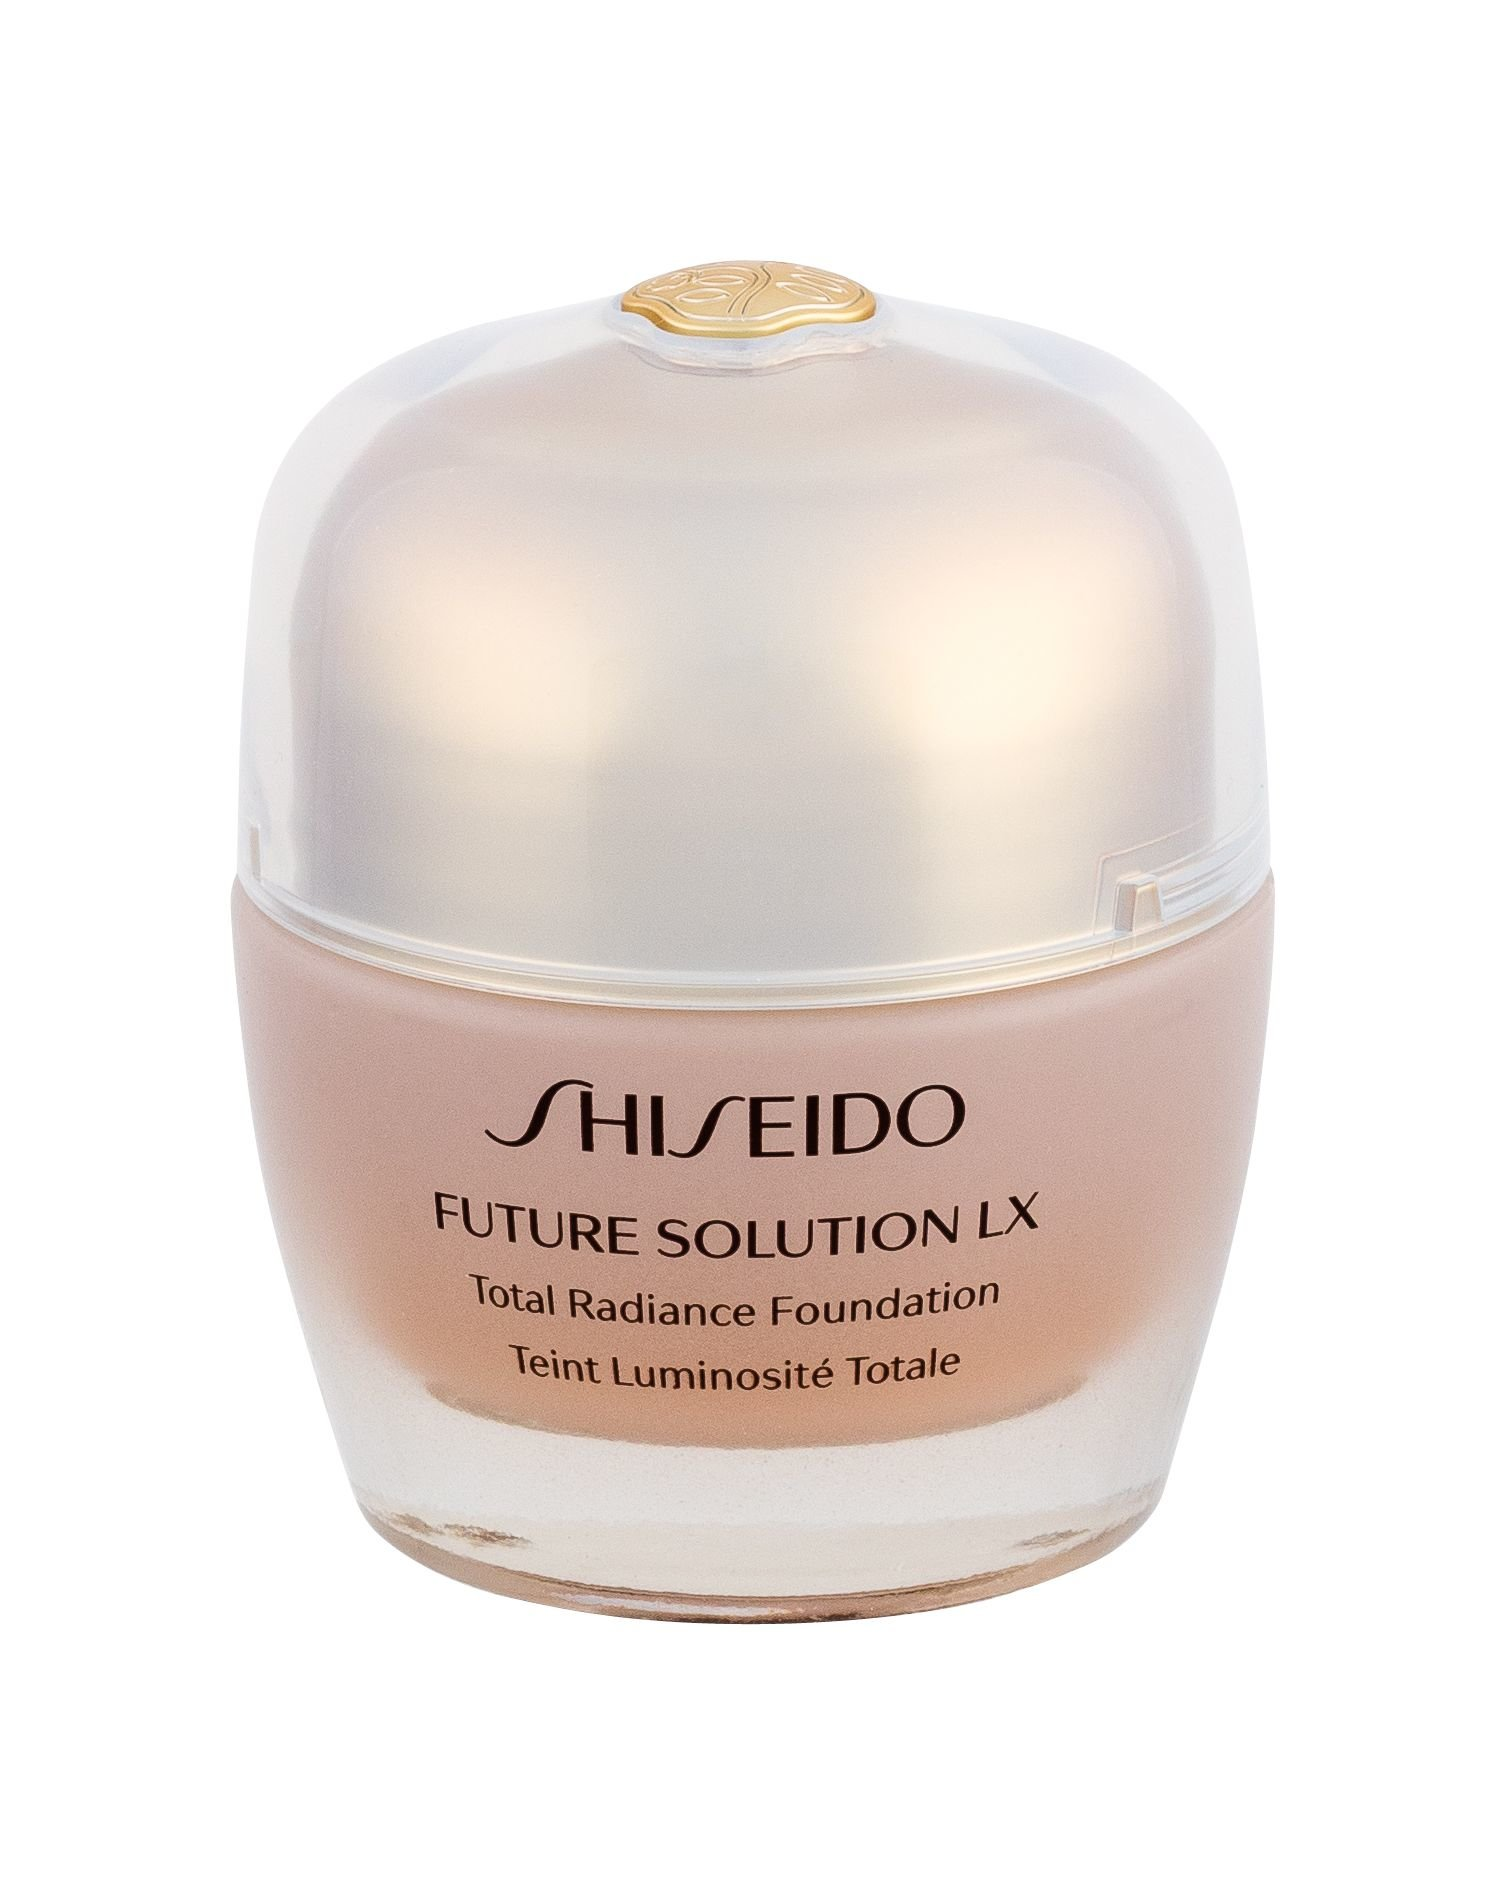 Shiseido Future Solution LX Makeup 30ml N4 Neutral